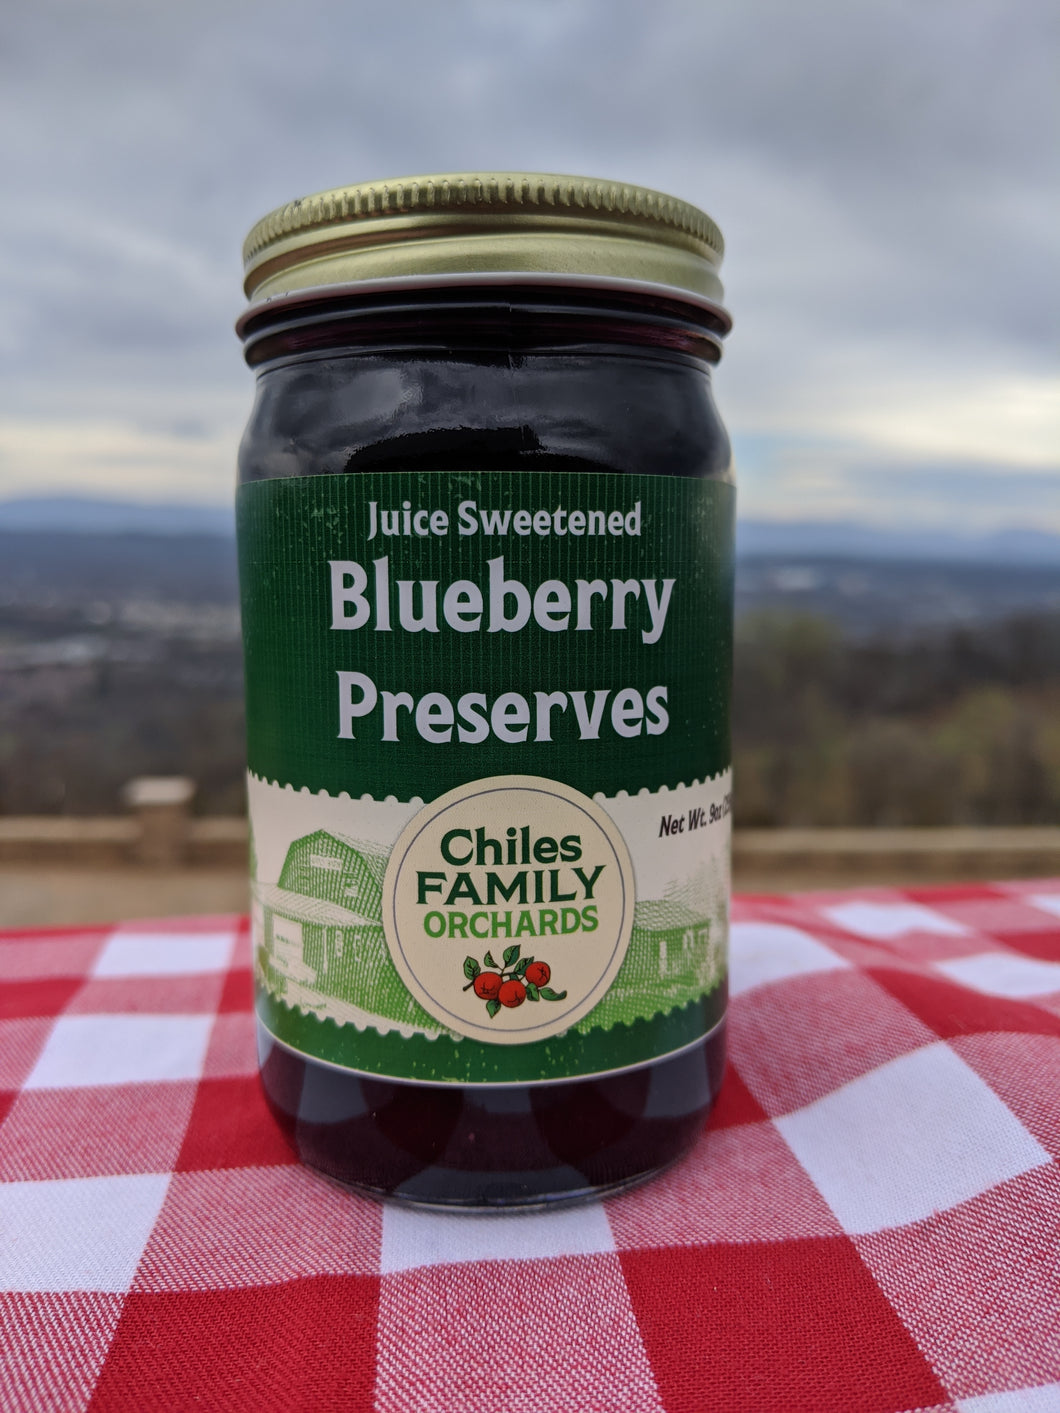 Juice Sweetened Blueberry Preserves